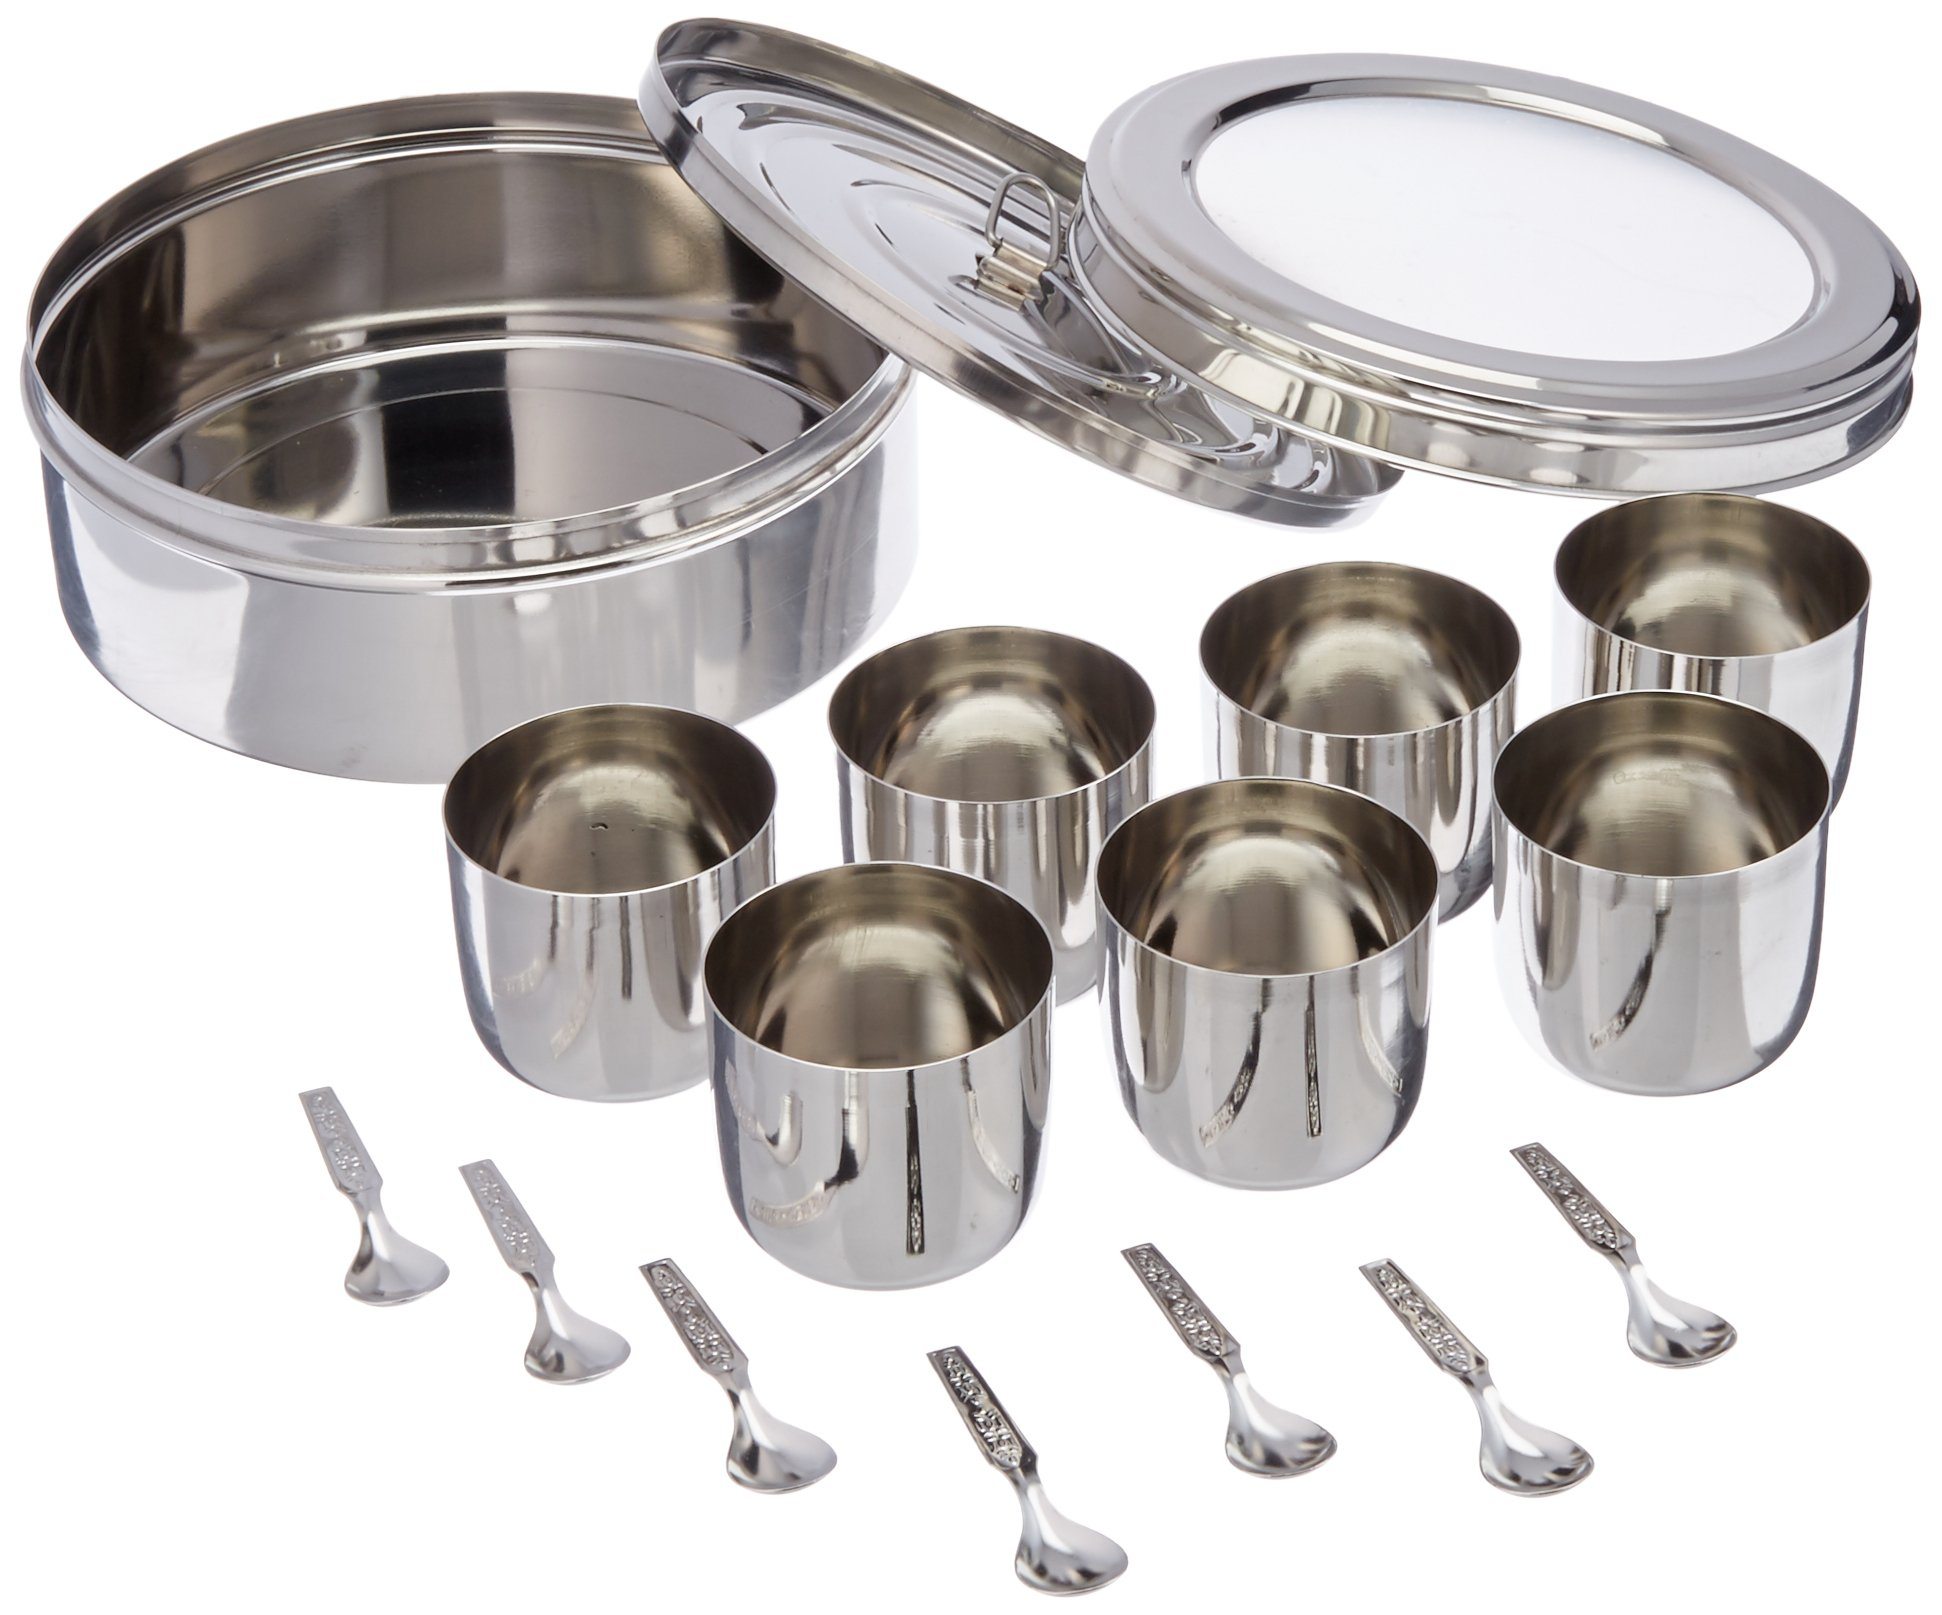 Tabakh Spice Container Masala Dabba - 7 Spoons - Clear Lid (Stainless Steel)